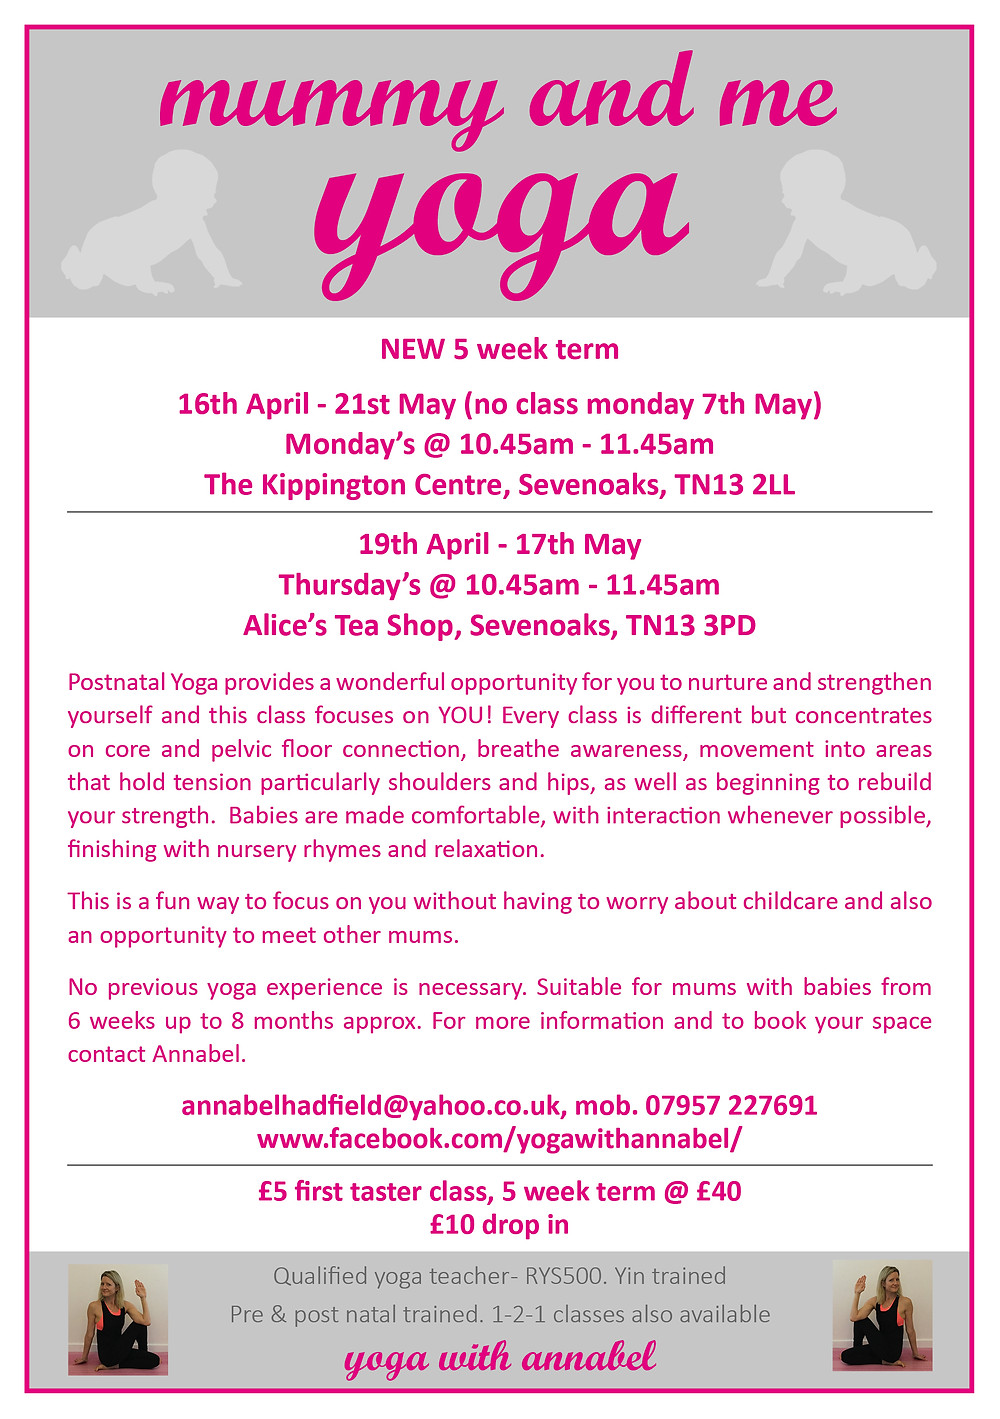 Mummy & Me yoga with Annabel Hadfield, Sevenoaks, Kent